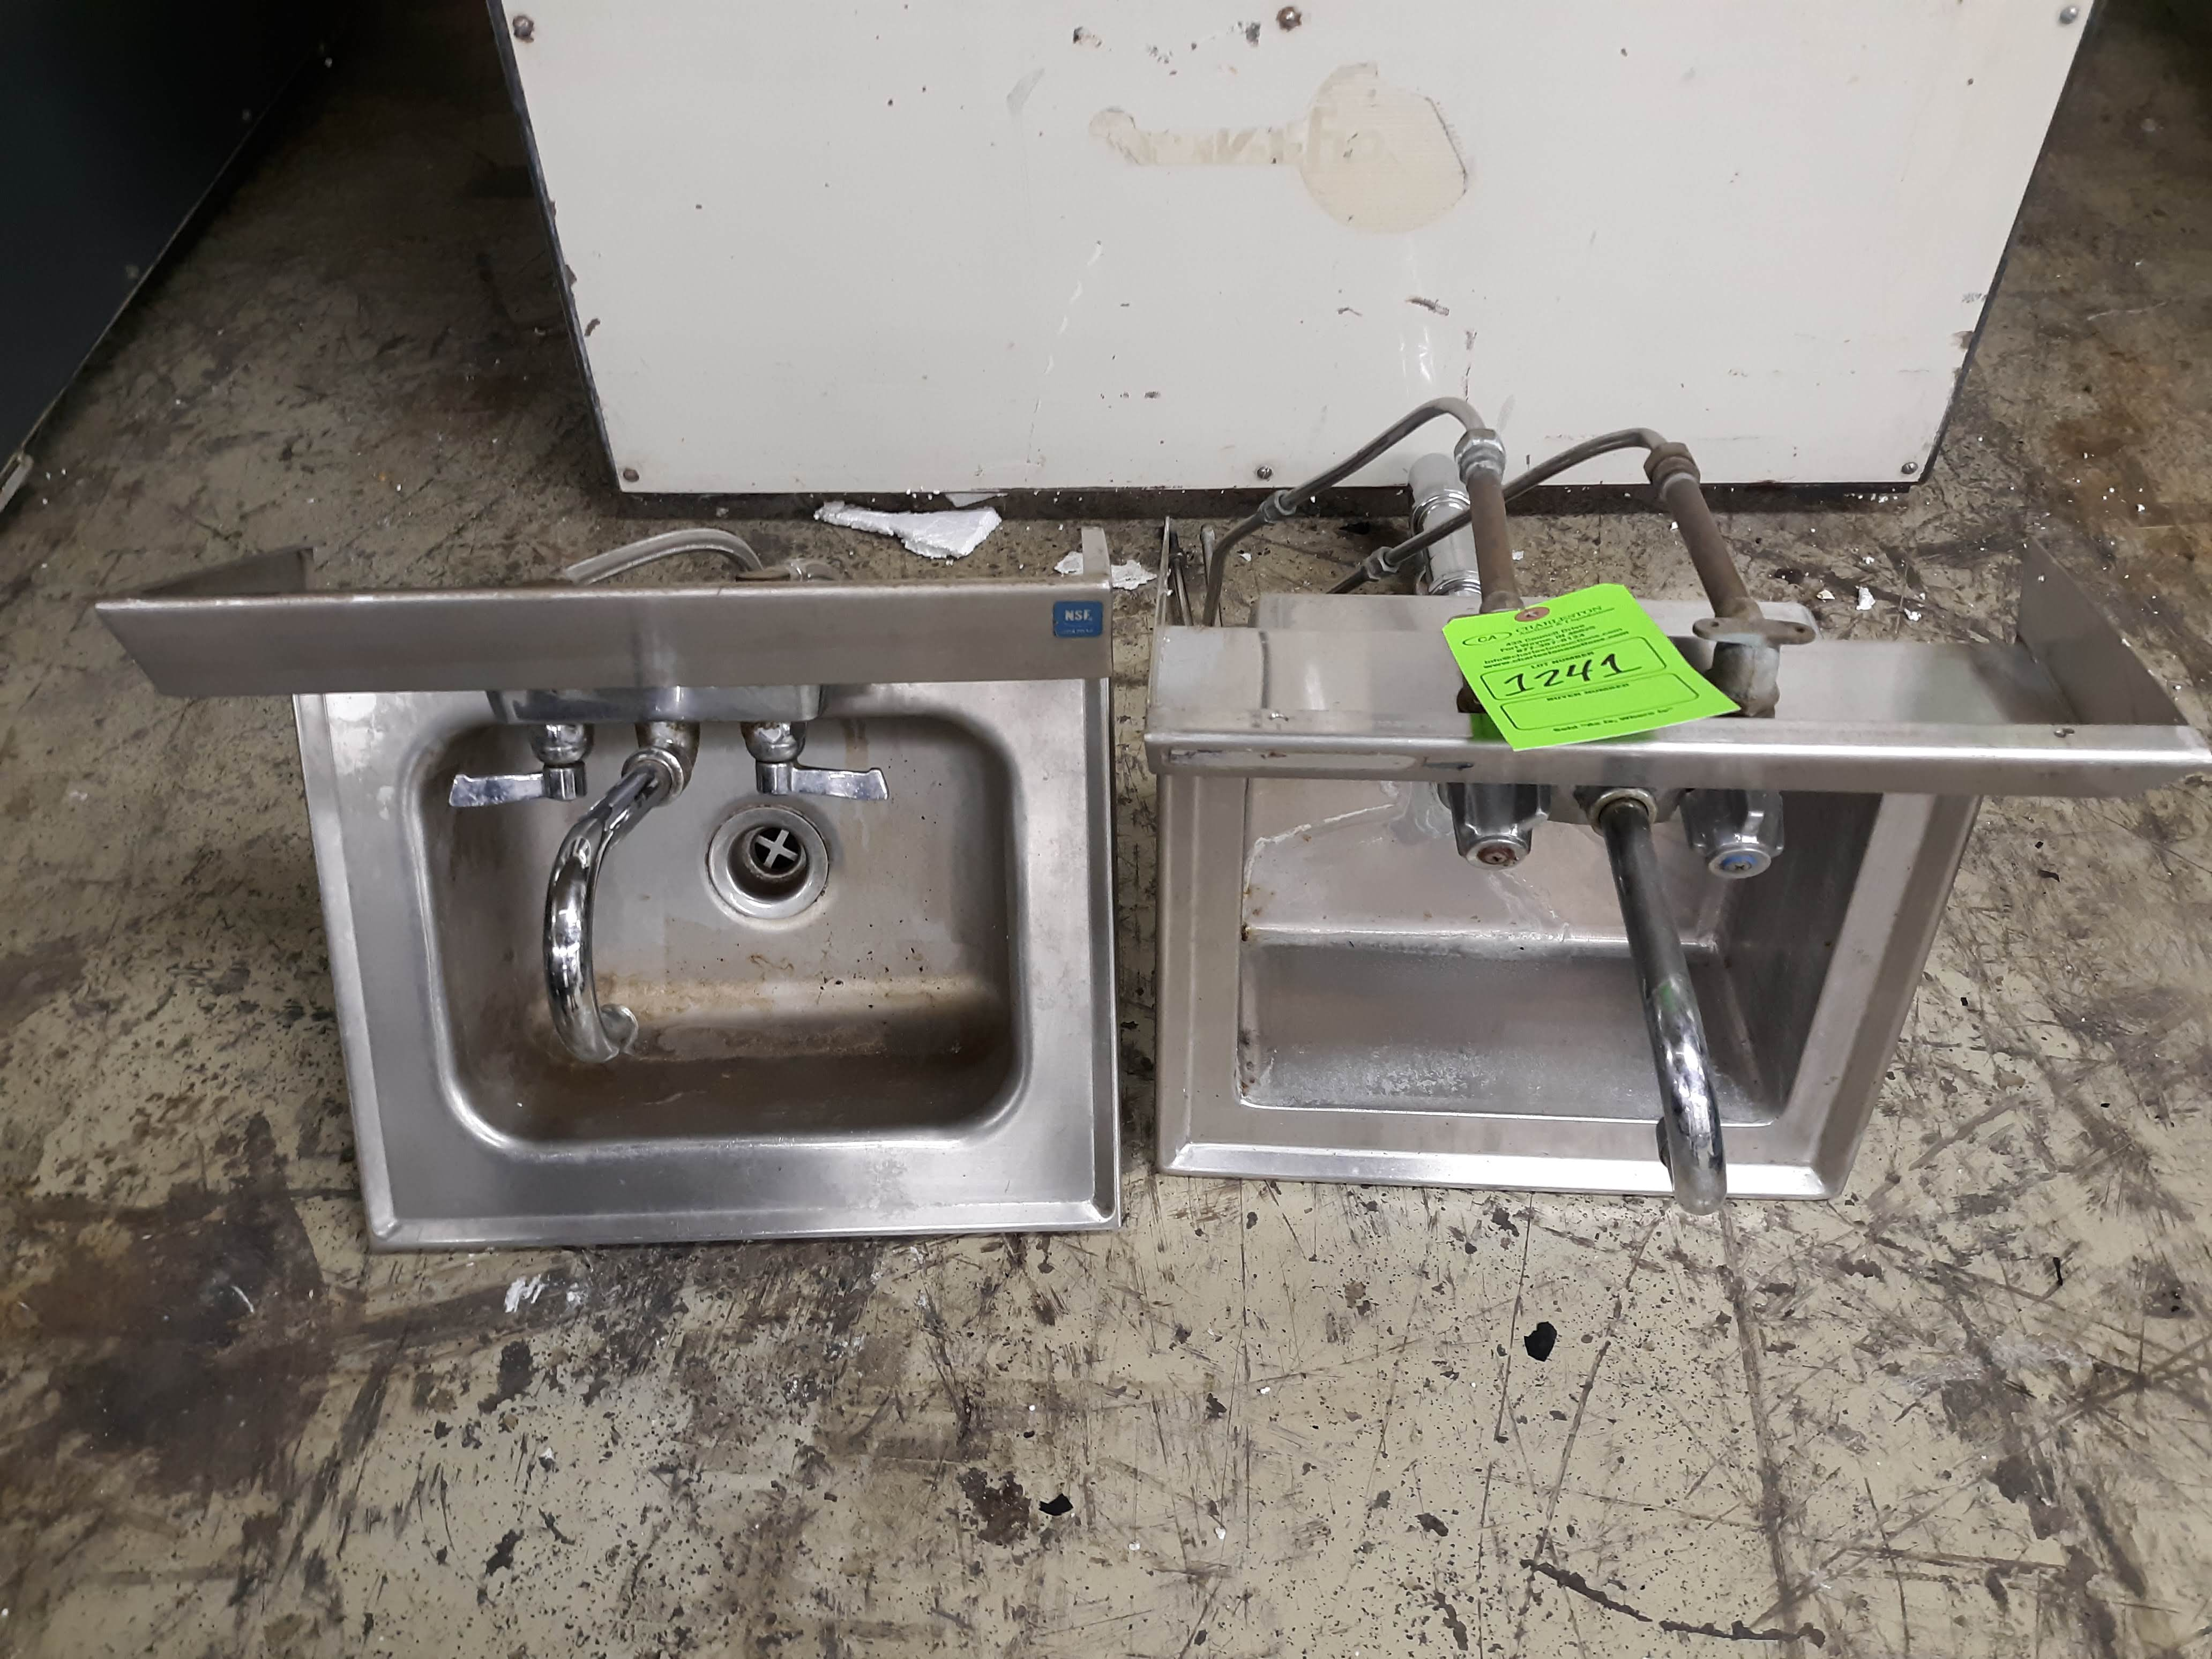 (2) STAINLESS STEEL SINKS (RESTAURANT EQUIPMENT) (LOCATED AT: 433 COUNCIL DRIVE, FORT WAYNE, IN